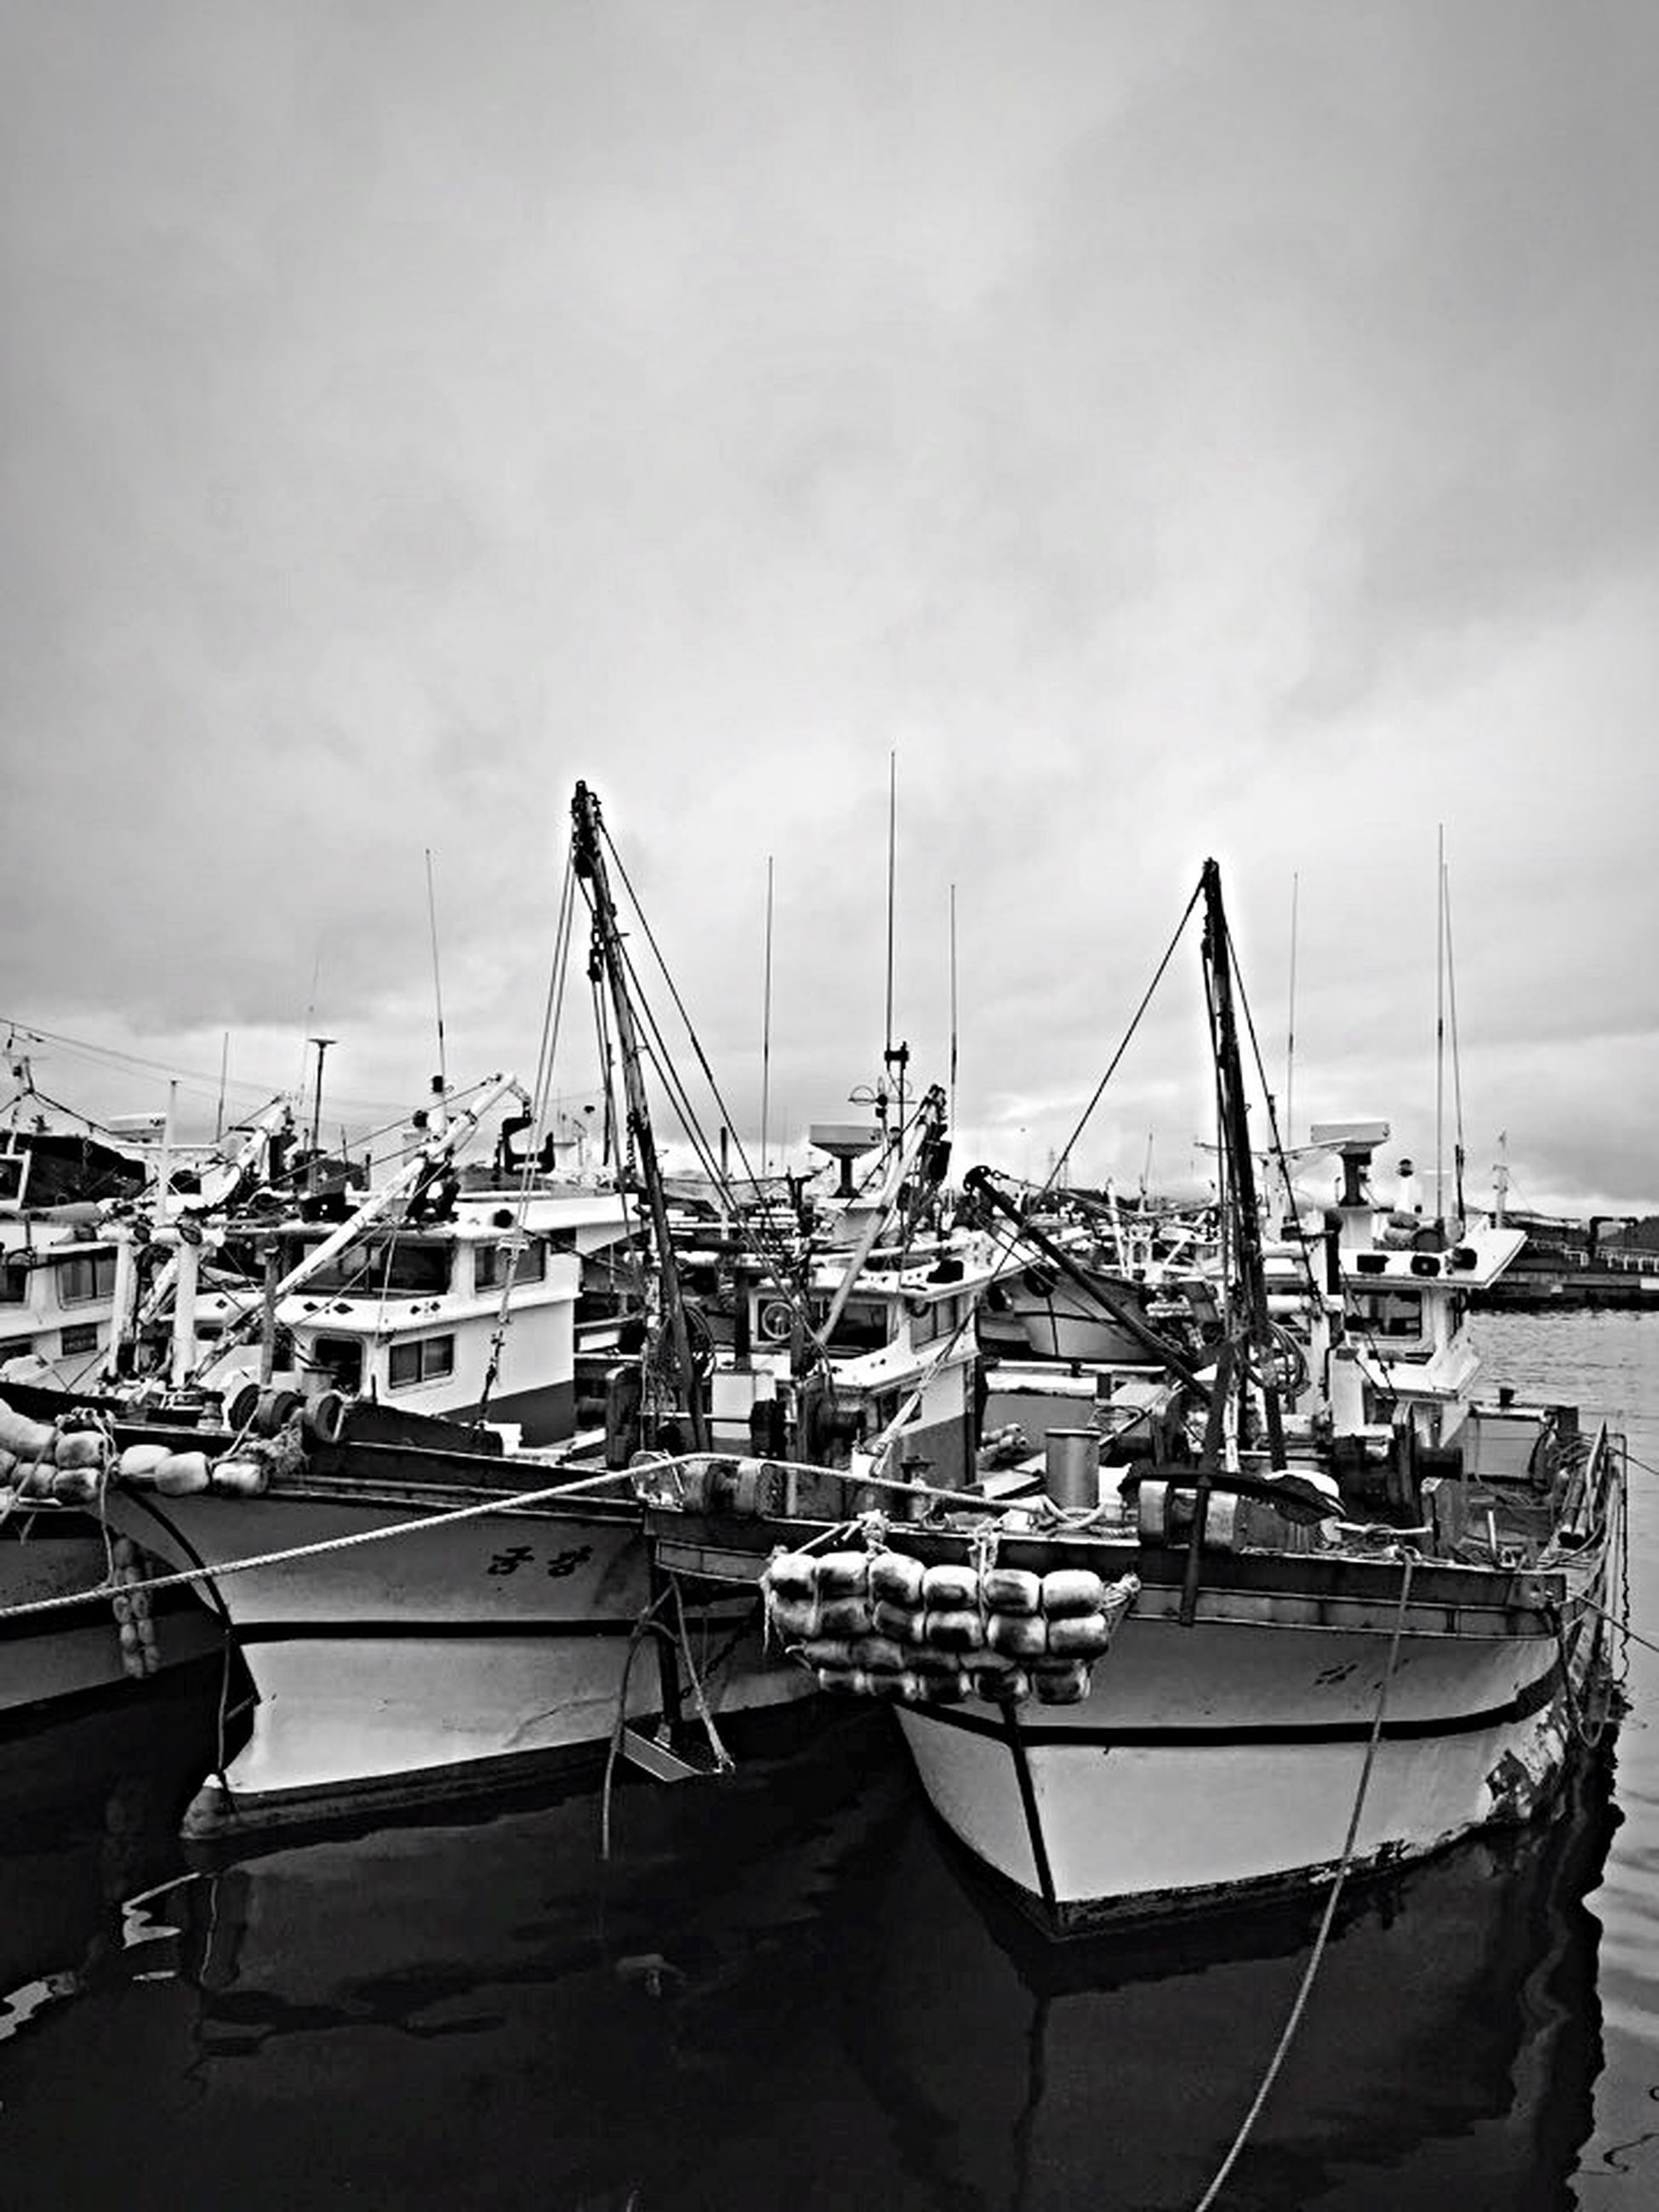 nautical vessel, moored, harbor, transportation, boat, mode of transport, mast, commercial dock, sky, water, sea, crane - construction machinery, cloud - sky, sailboat, development, built structure, freight transportation, building exterior, outdoors, industry